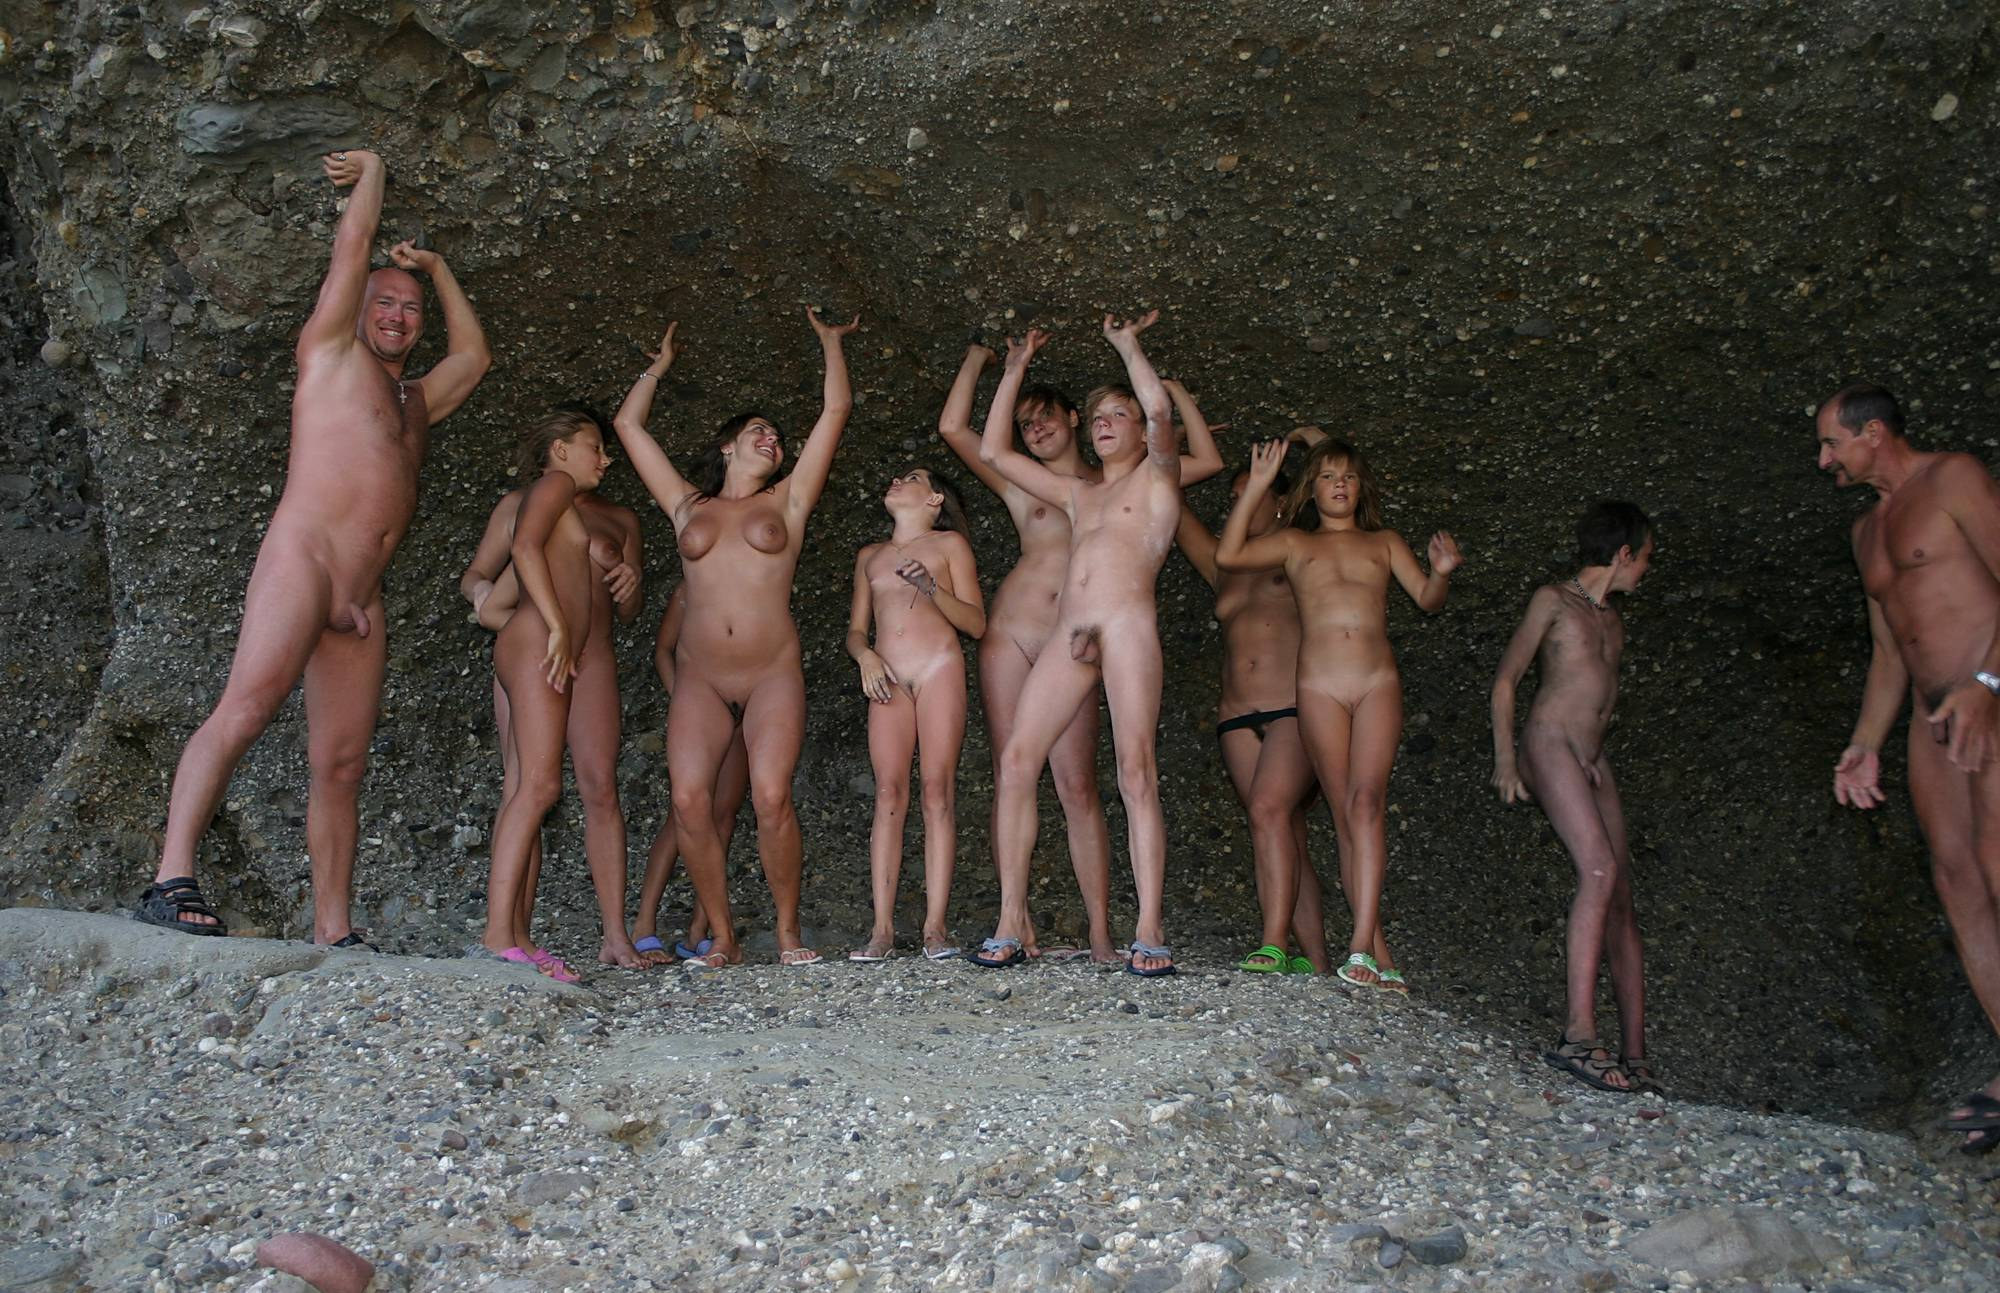 Nudist Pictures Family Cave Photo Line-Up - 2